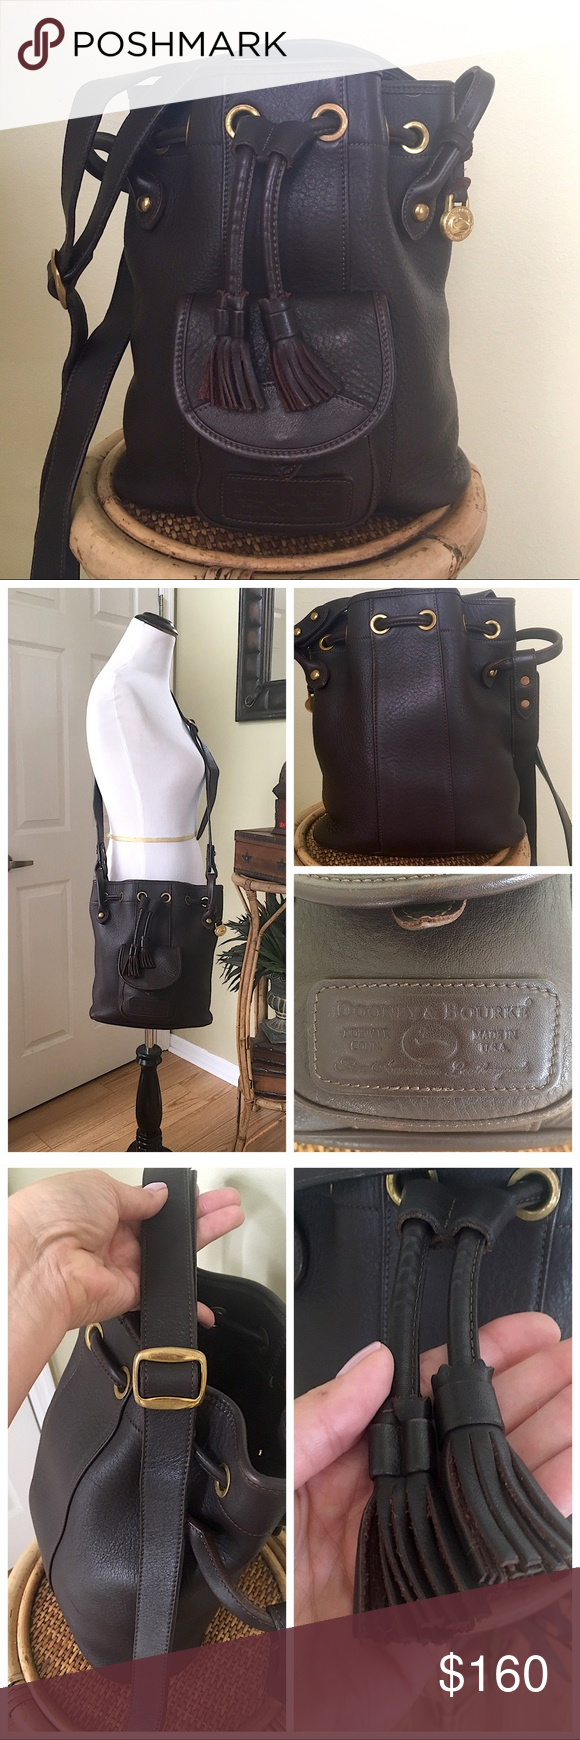 Vintage Dooney Bourke Glove Leather Drawstring Gorgeous Db Tanned